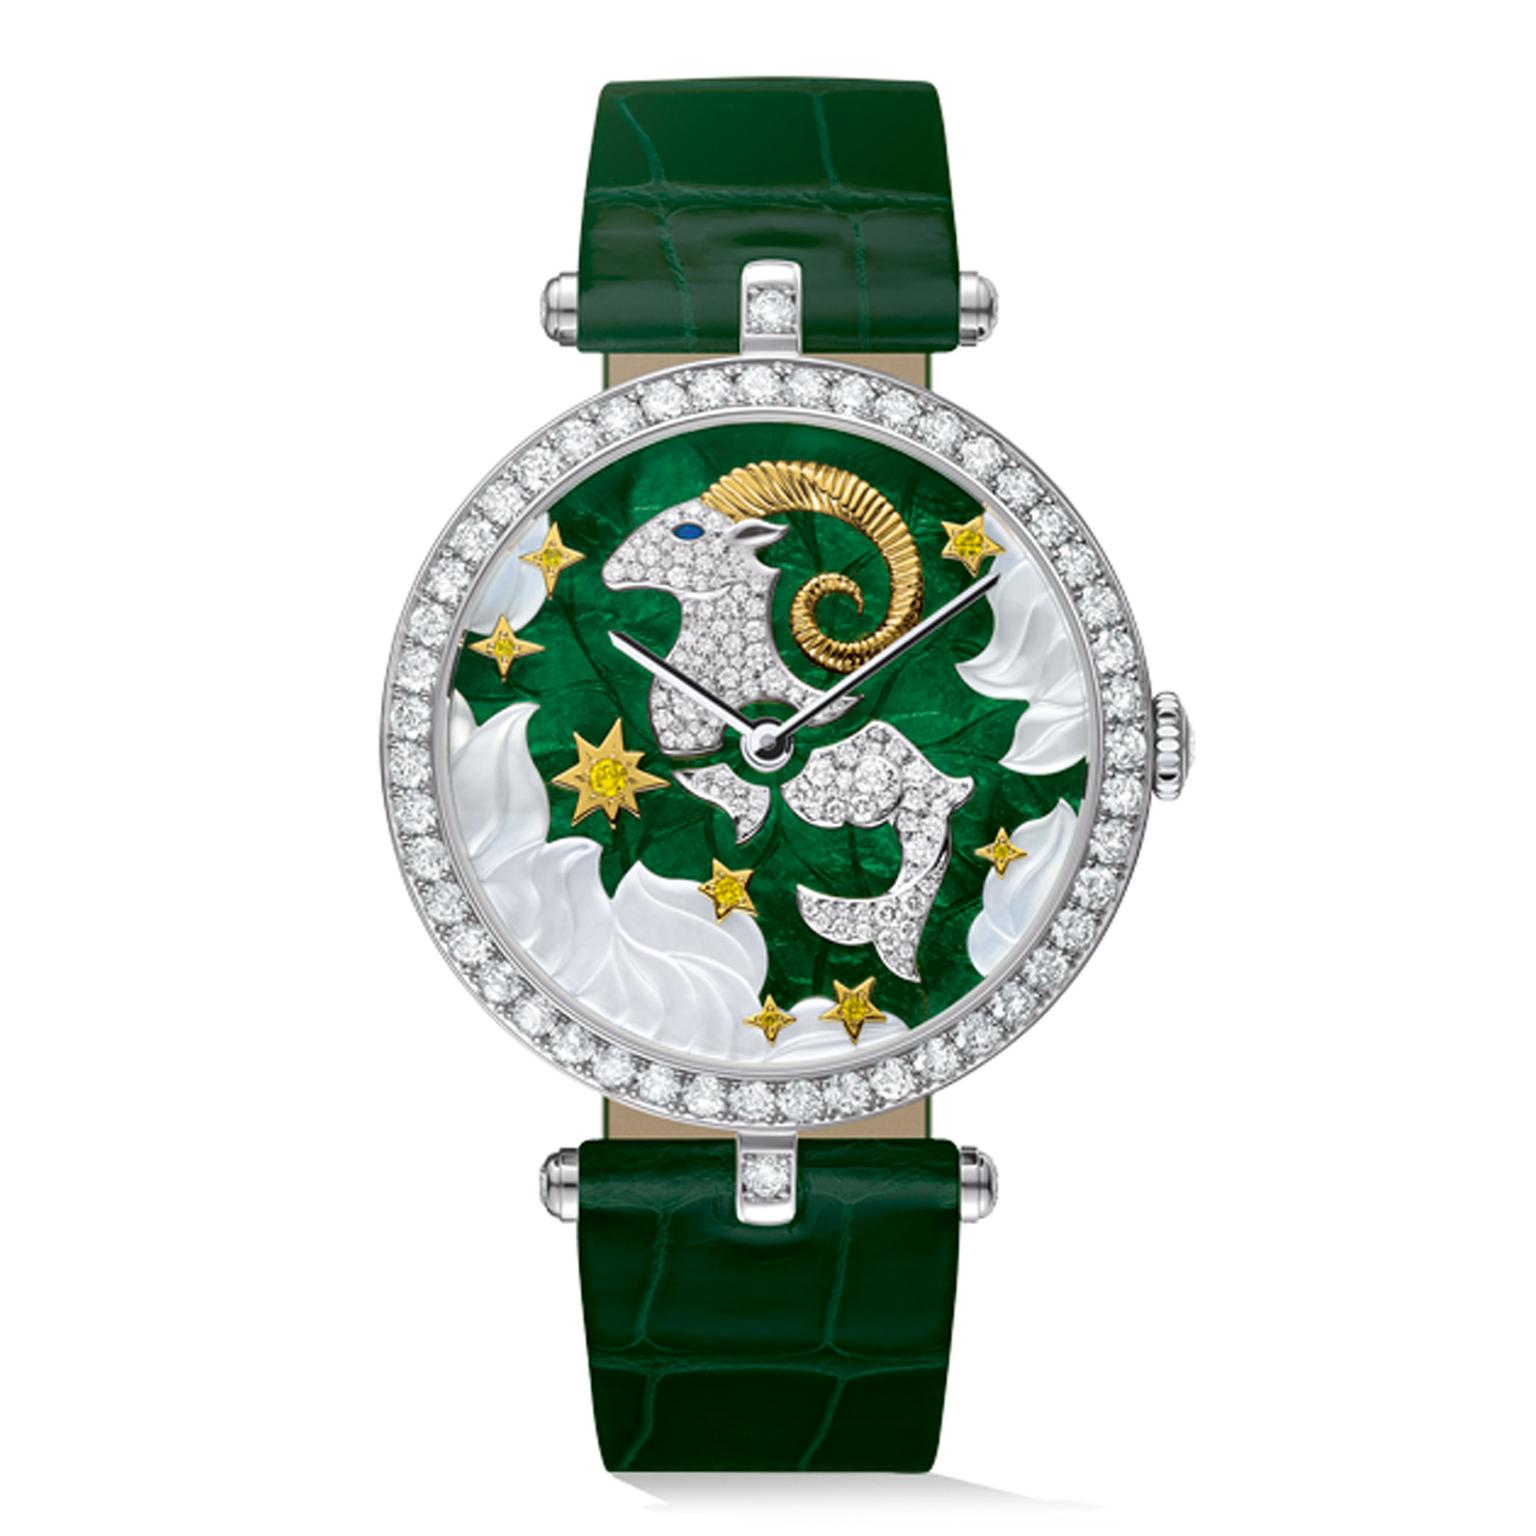 Van-Cleef-Capricorn-Watch-Zoom